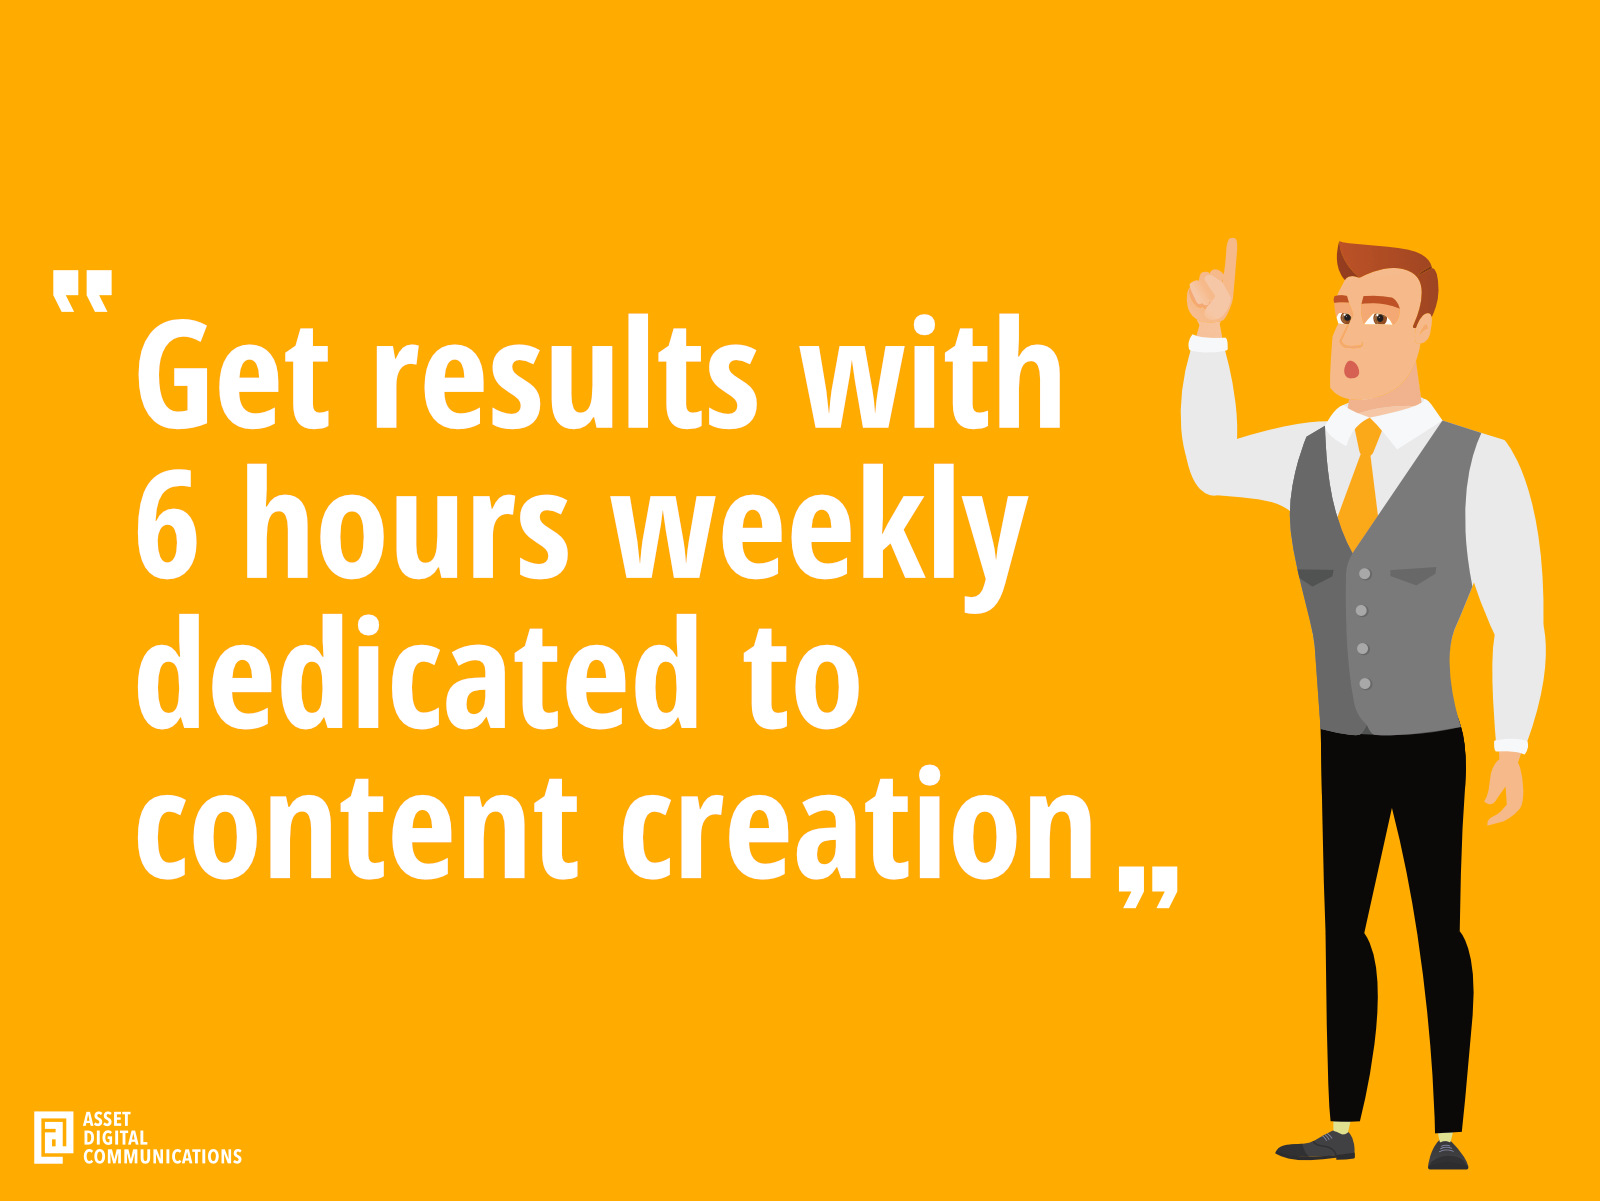 Dedicate time weekly to see results | Asset Digital Communications